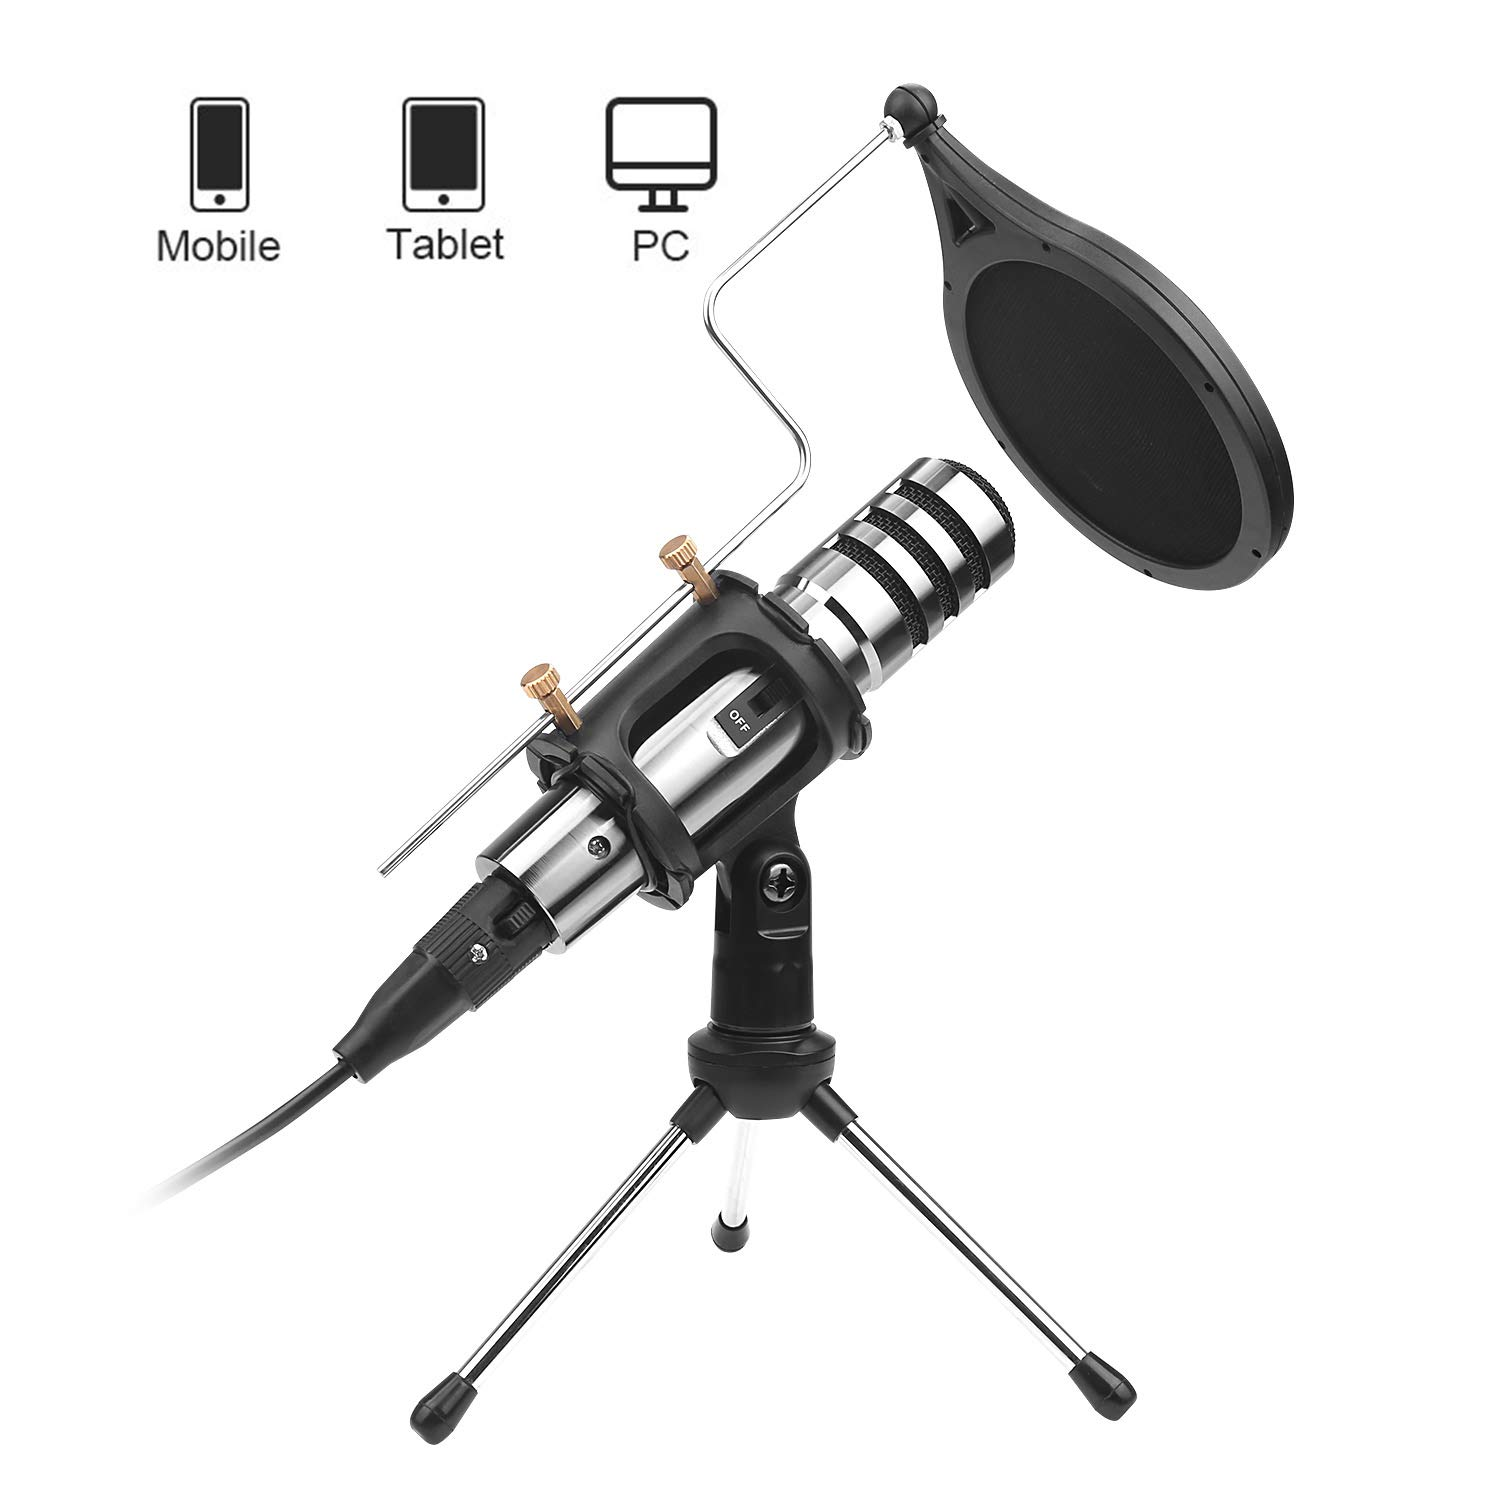 DricRoda Condenser Microphone, 3.5mm Studio Recording Broadcast Microphone Computer Phone Mic w/Tripod Stand, Pop Filter for Karaoke, Gaming, Podcast, Video Conference, Facebook, YouTube (X-3)